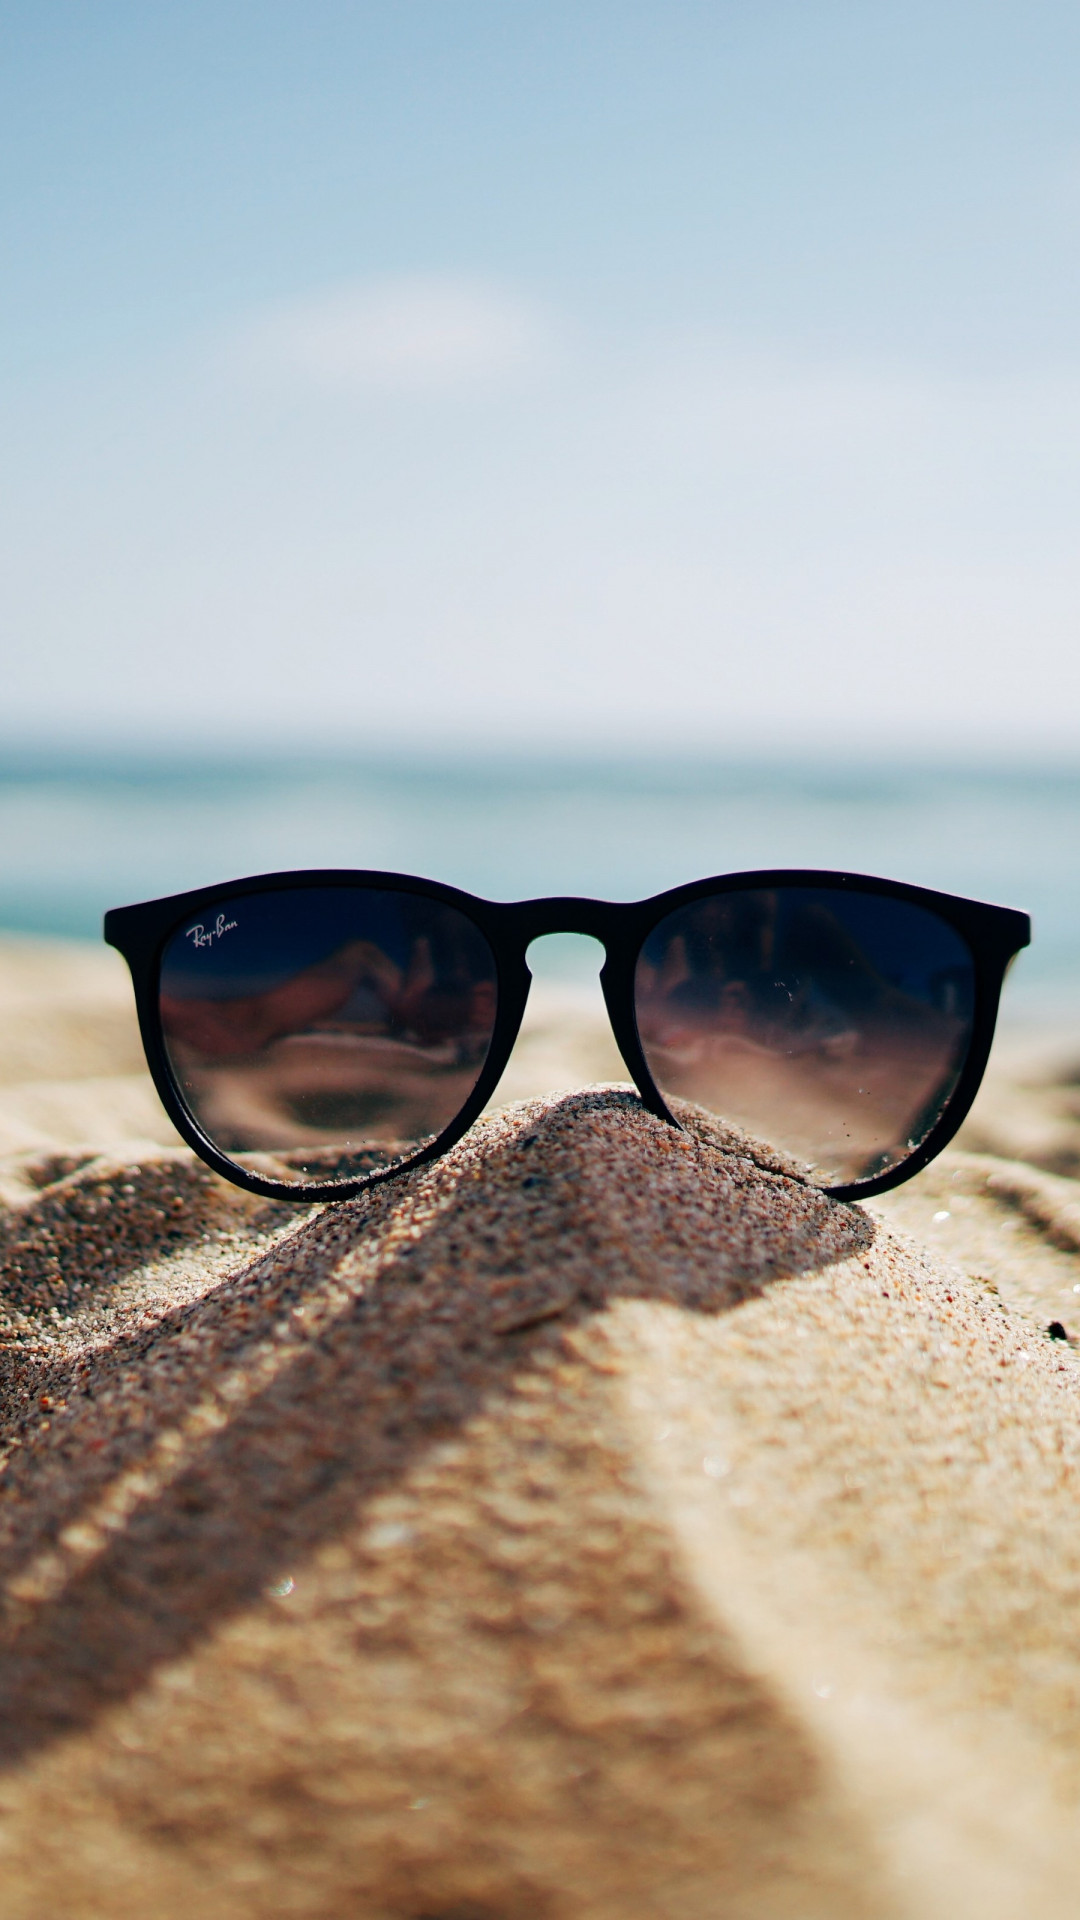 Ray Ban sunglasses on hot sand beach wallpaper 1080x1920